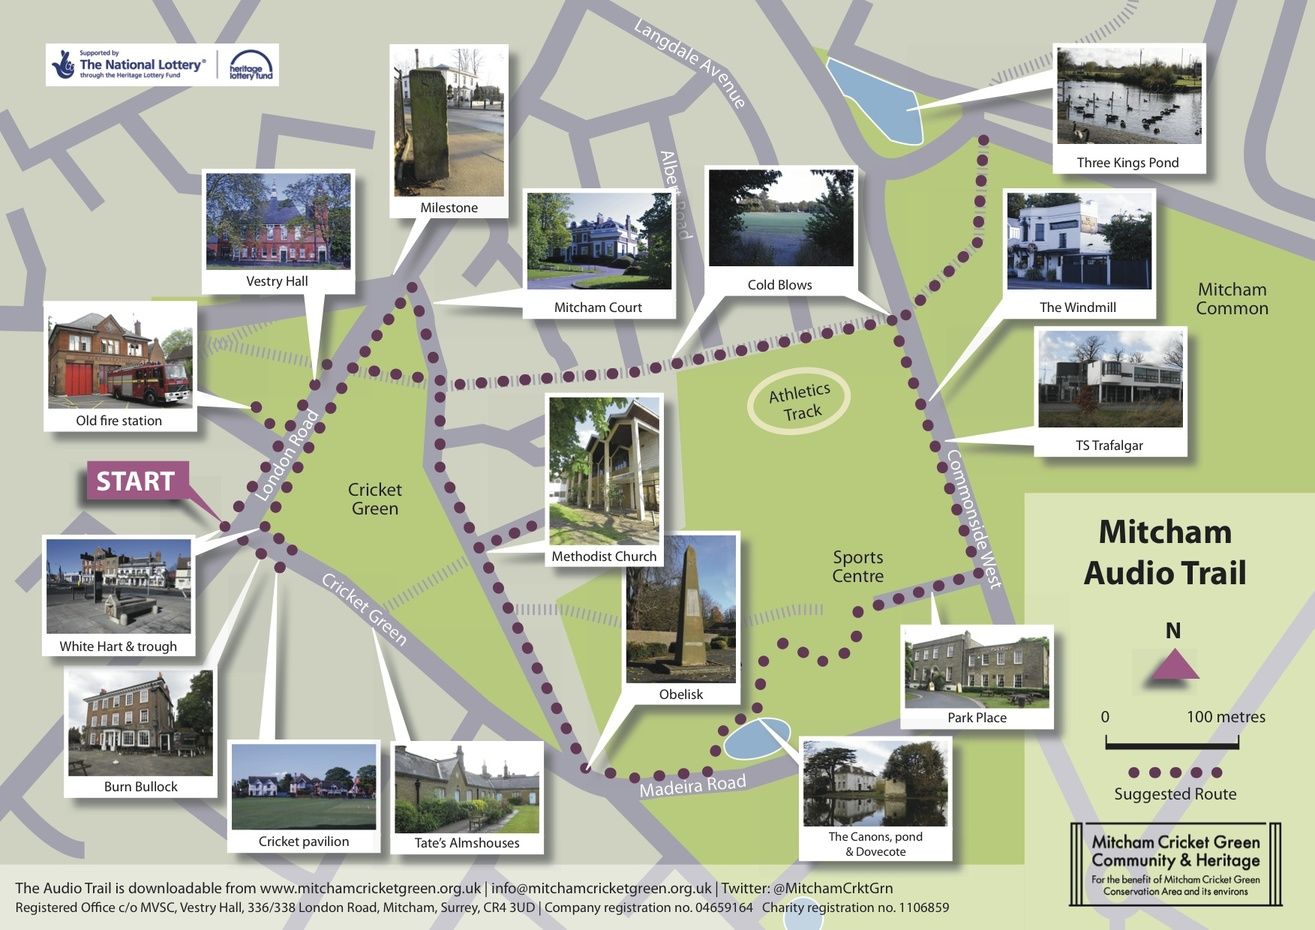 Mitcham Cricket Green audio trail map